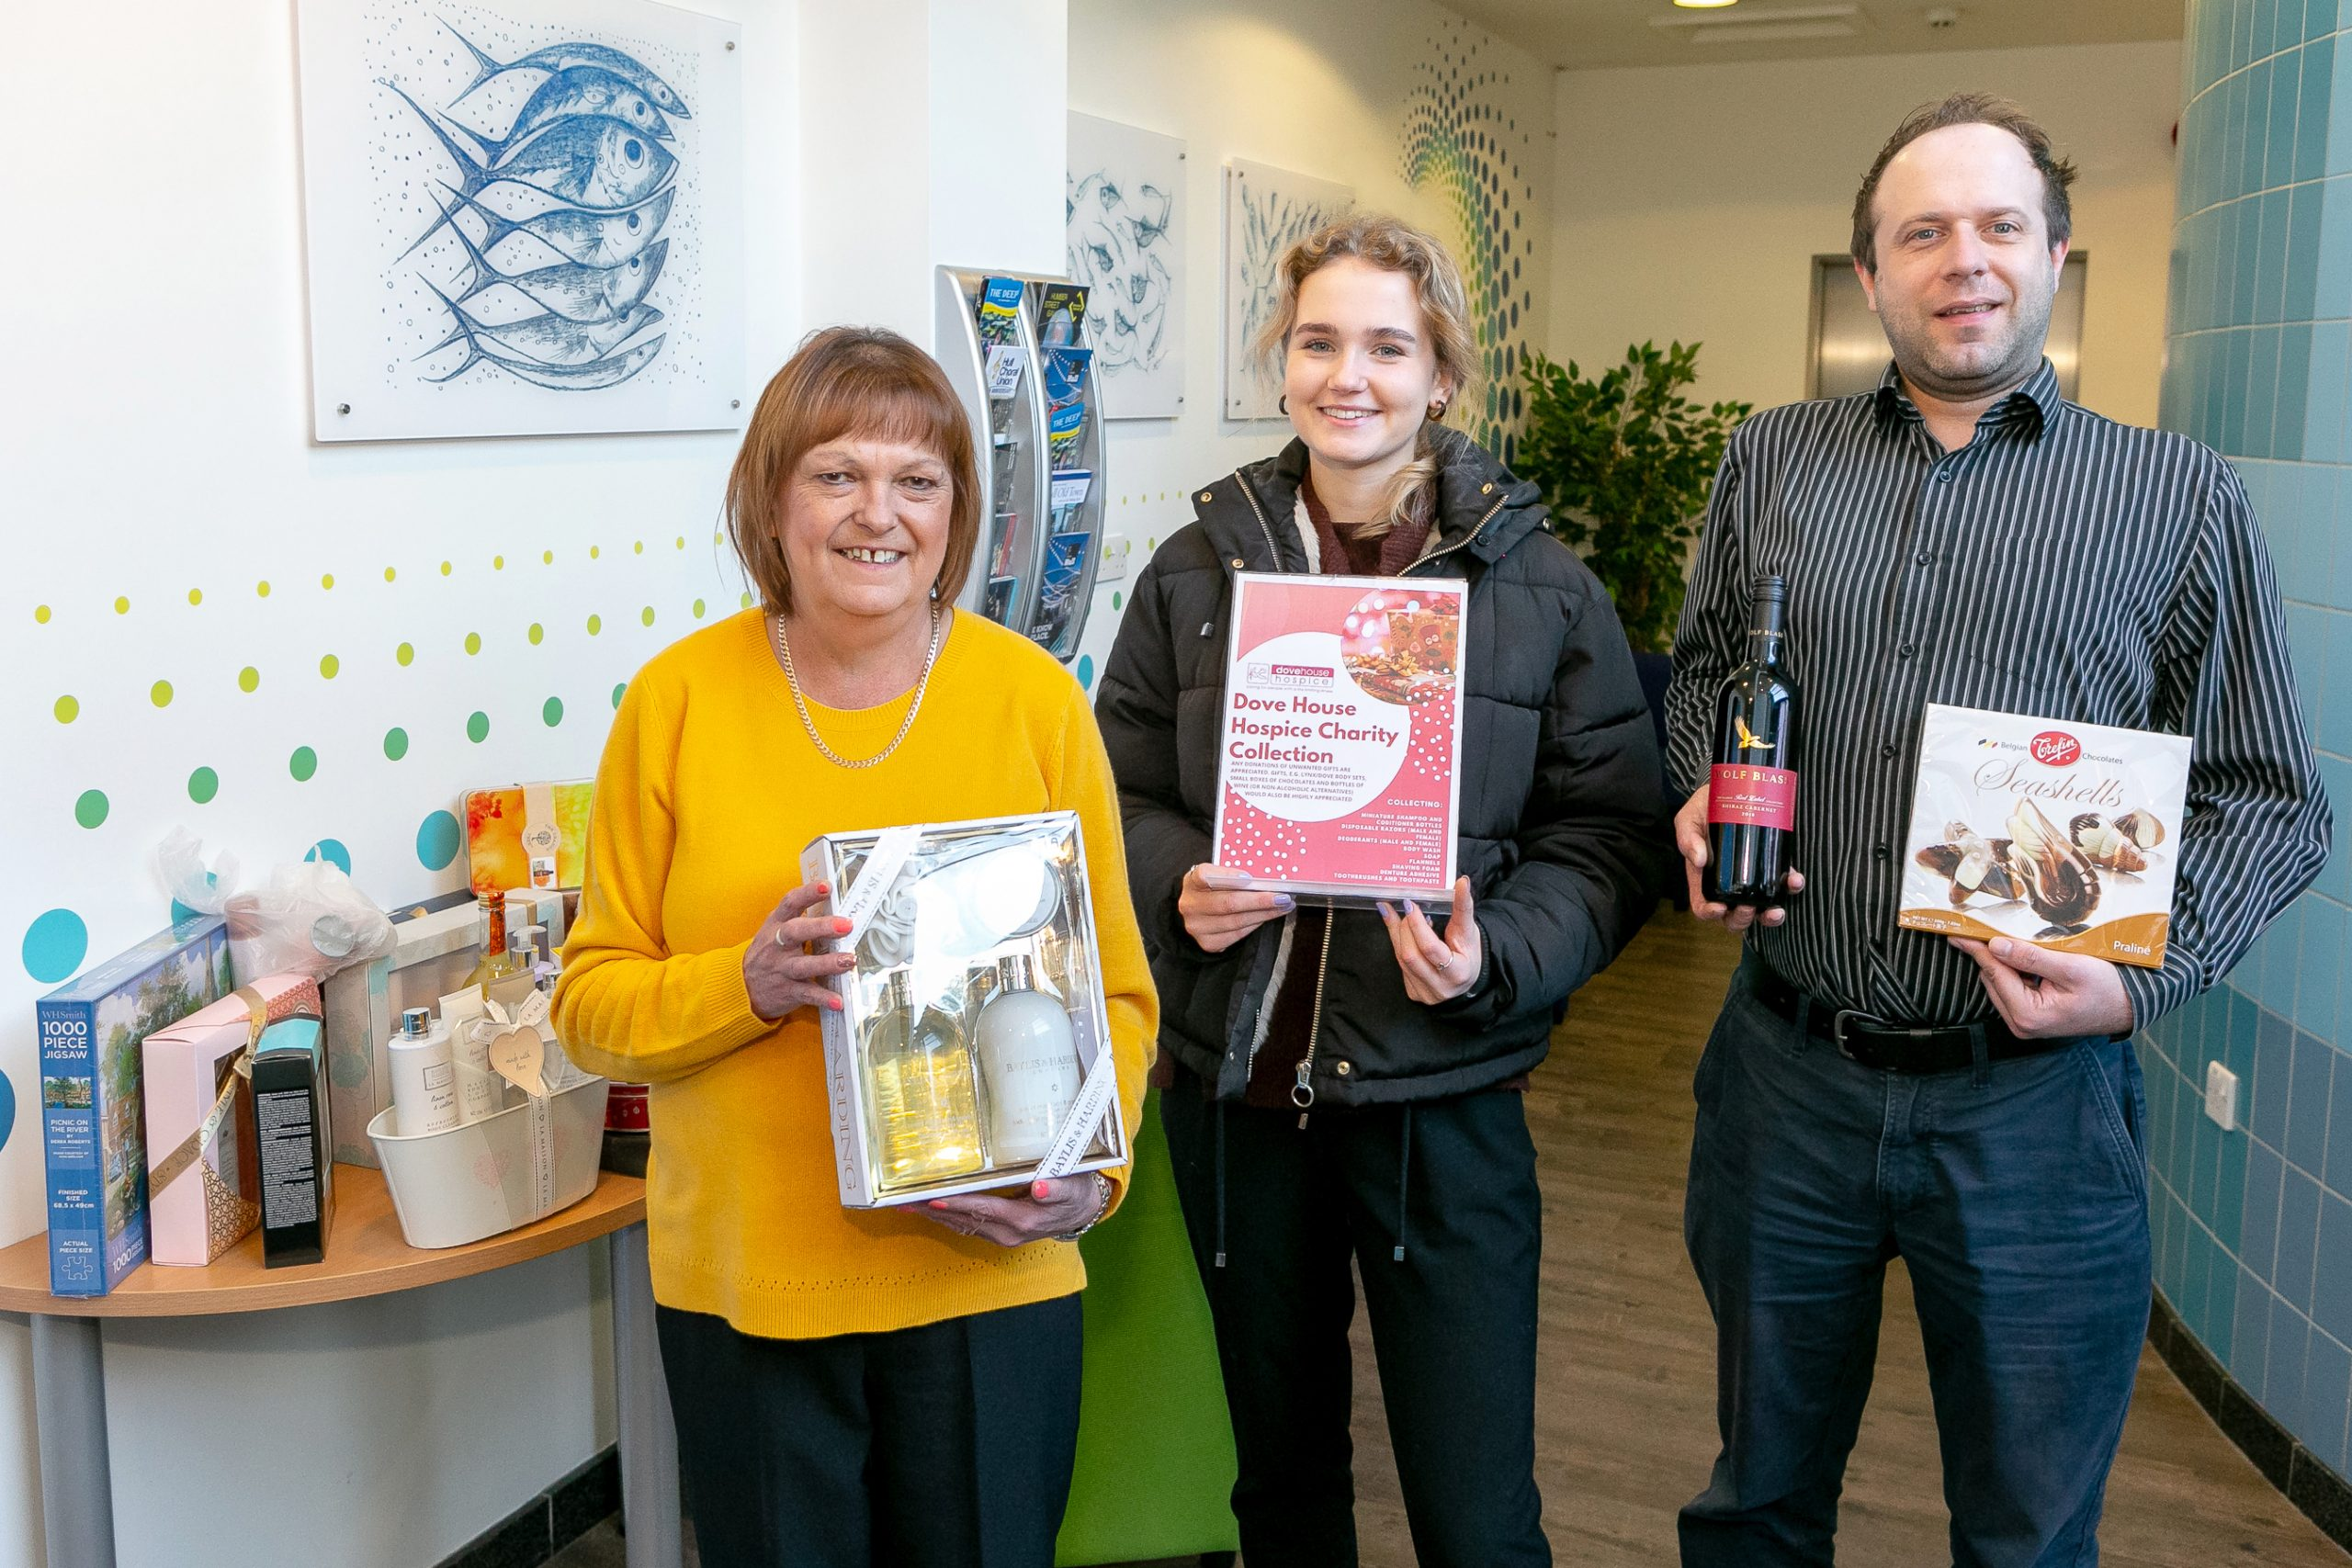 Pictured with some of the items collected at The Deep Business Centre are (from left) receptionist Sue Waterhouse, Business Centre visitor Megan Jaram and James Slingsby, who works in the Business Centre for Denholm Port Services.